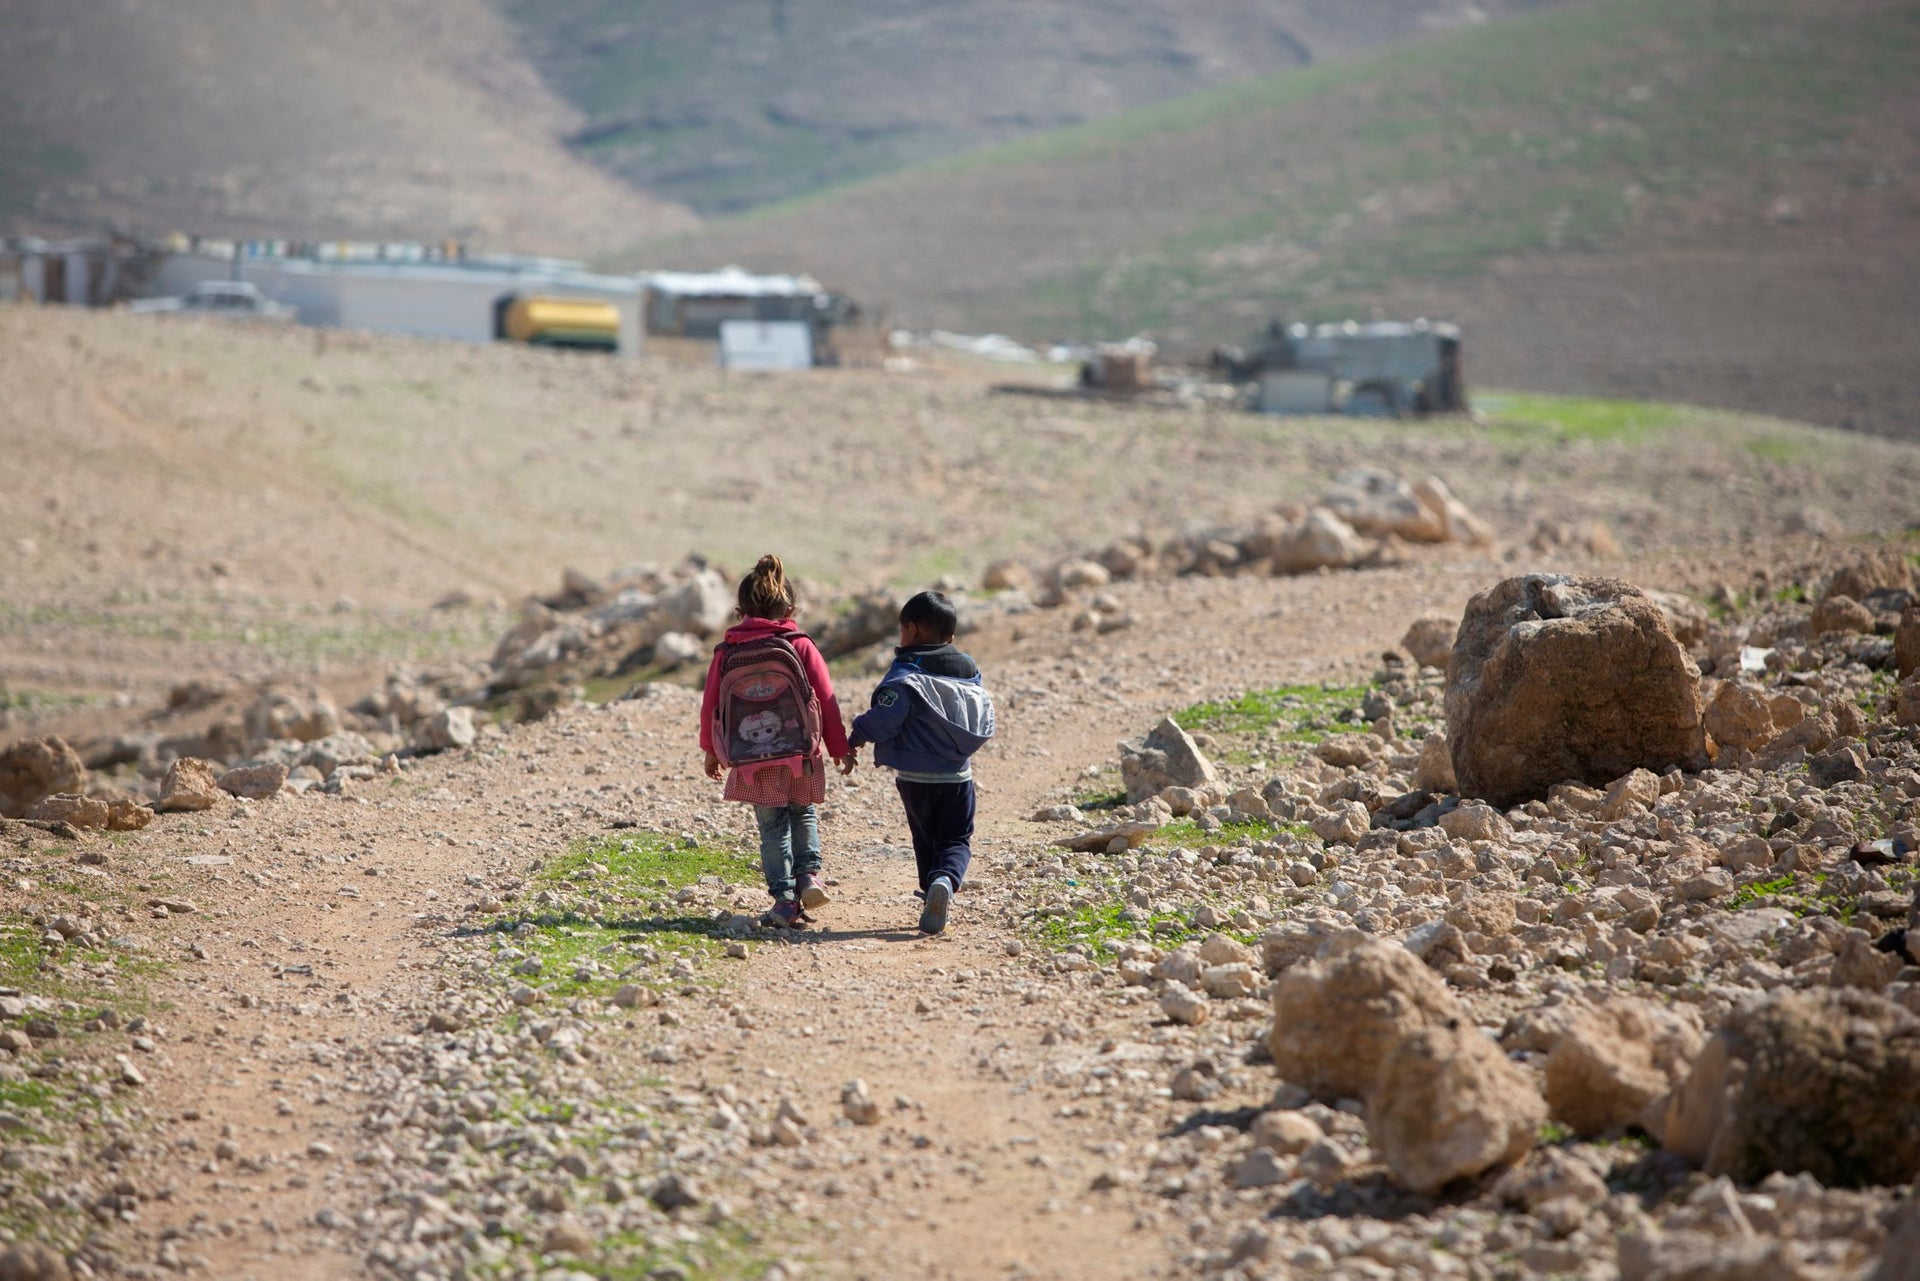 Two Bedouin children walking home from school in the West Bank village of Al Muntar, January 2018.